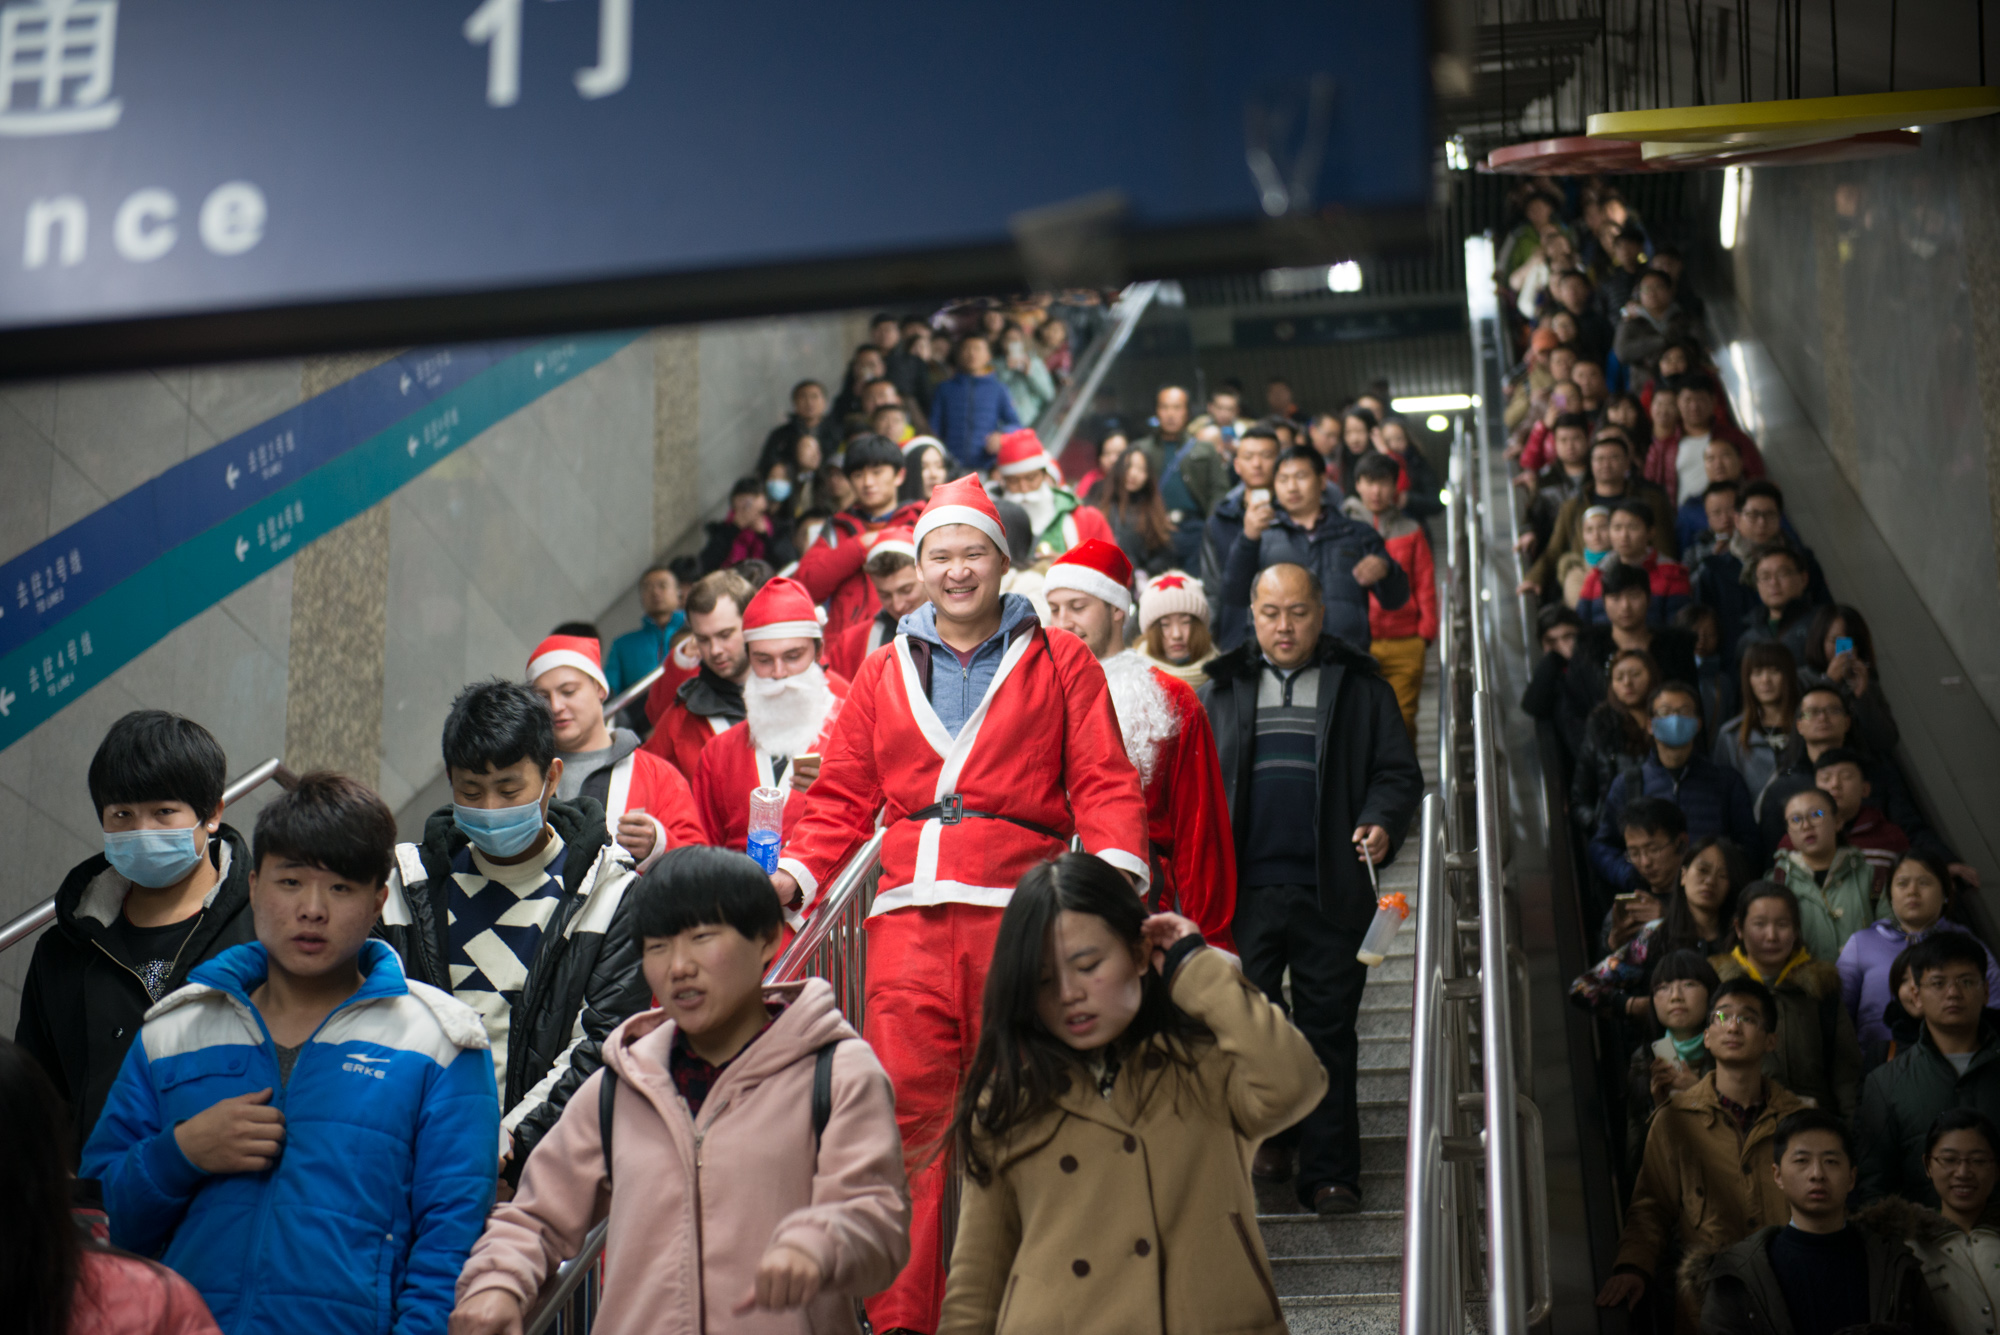 A wave of Santas heads to the Gulou (Drum tower) region of Beijing, on the Line 2 Subway